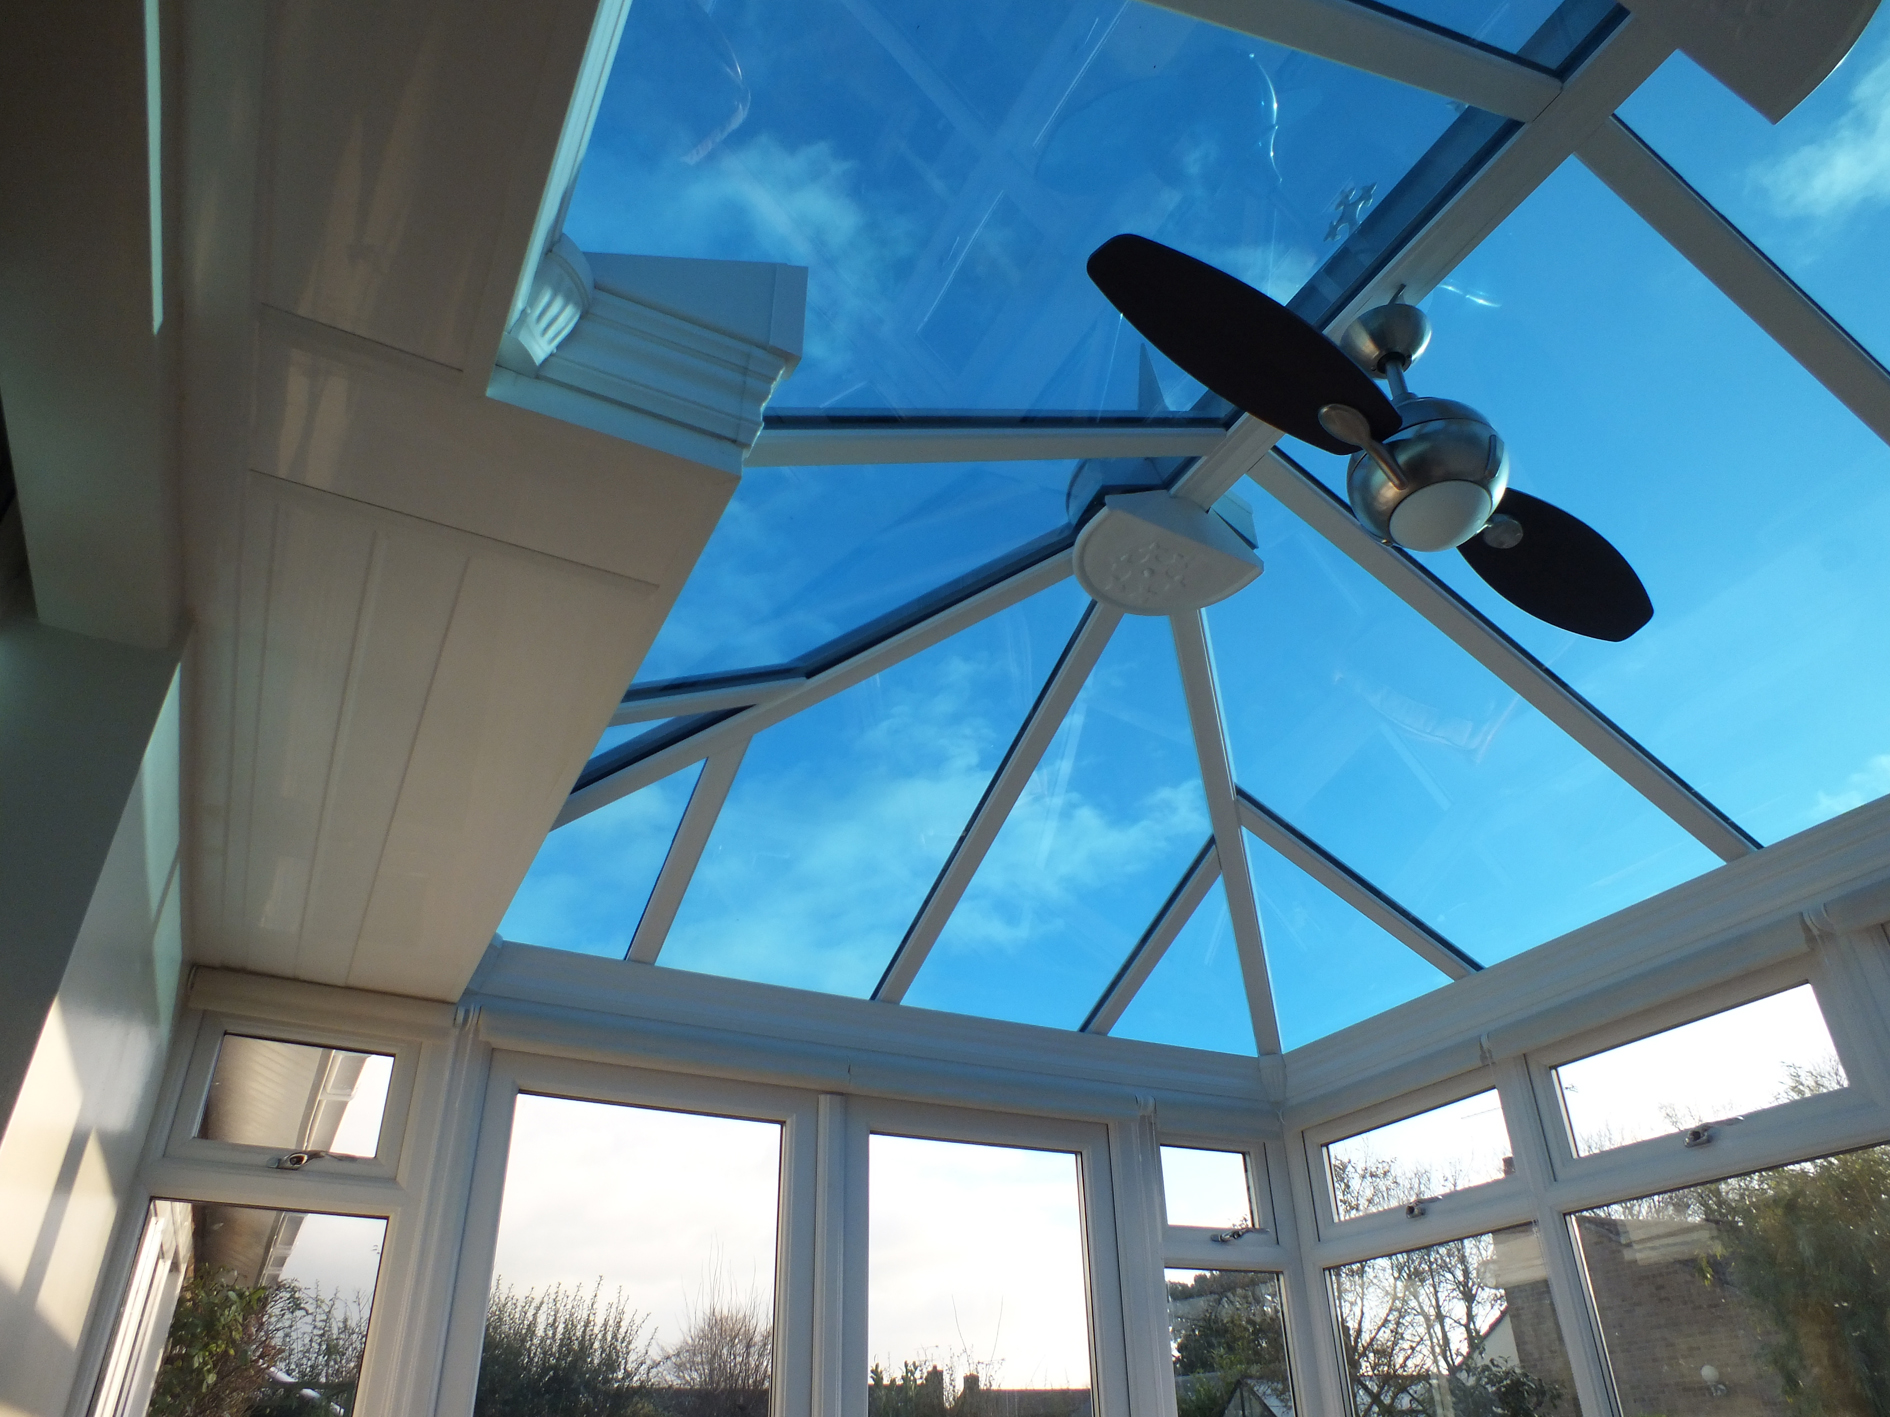 Conservatory roof glass fitted with blue 25 solar window film for glare issues Tinting Express Ltd Barnstaple UK